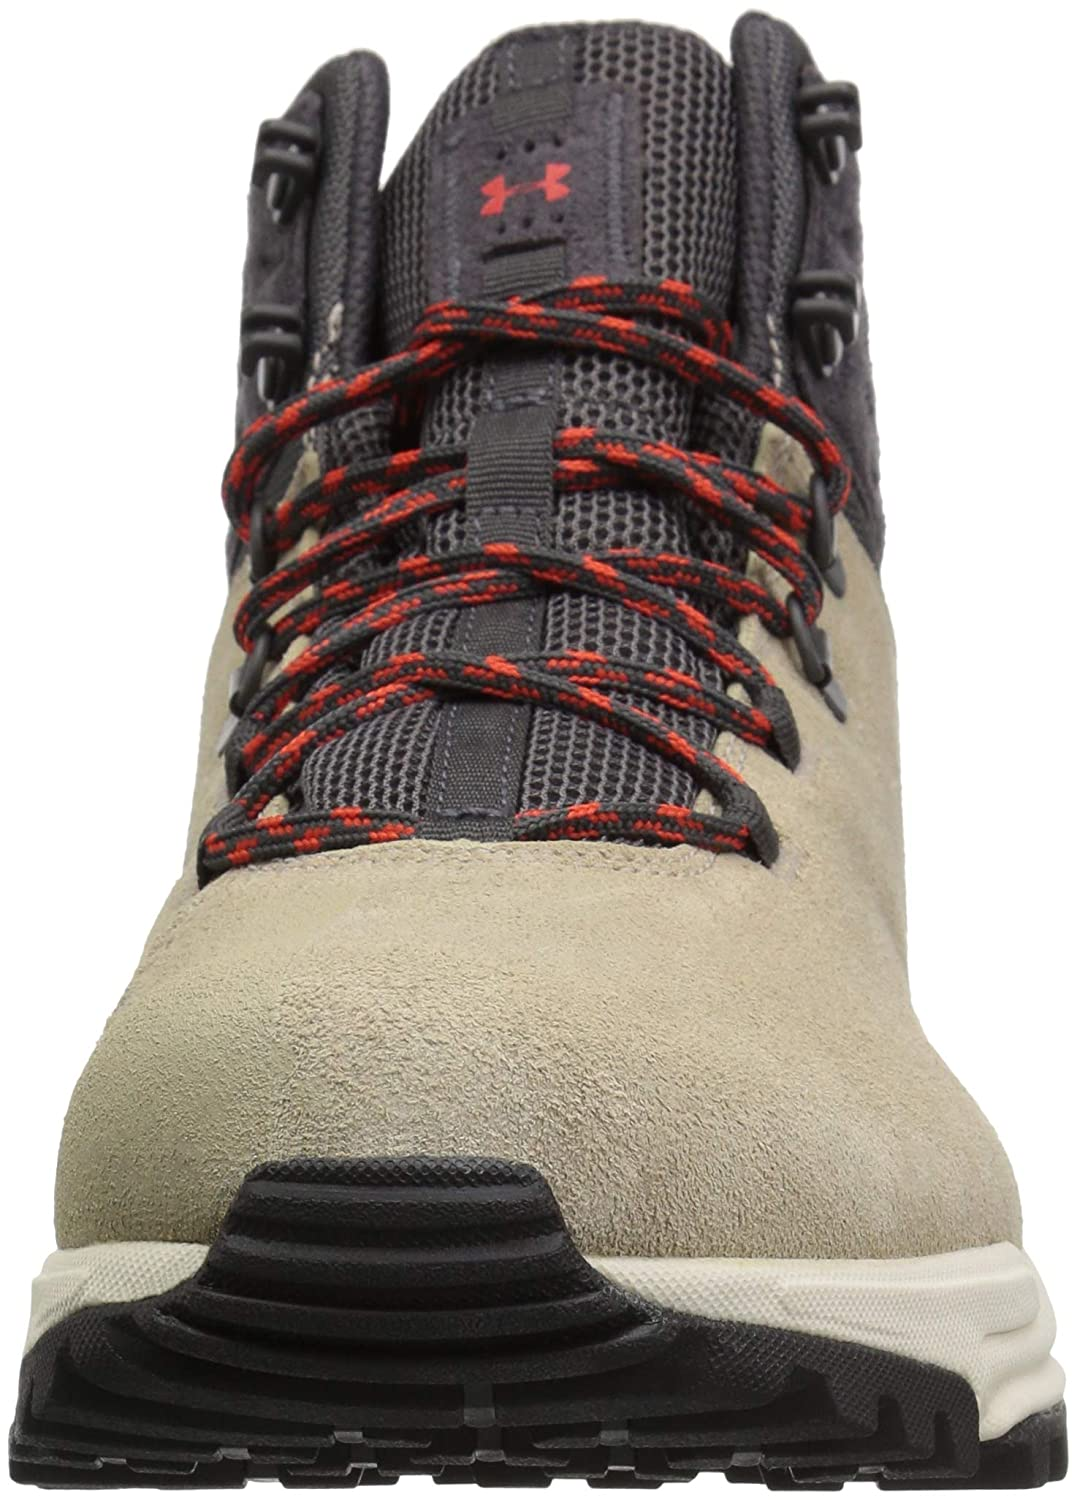 Under Armour Mens Brower Mid Waterproof Hiking Boot